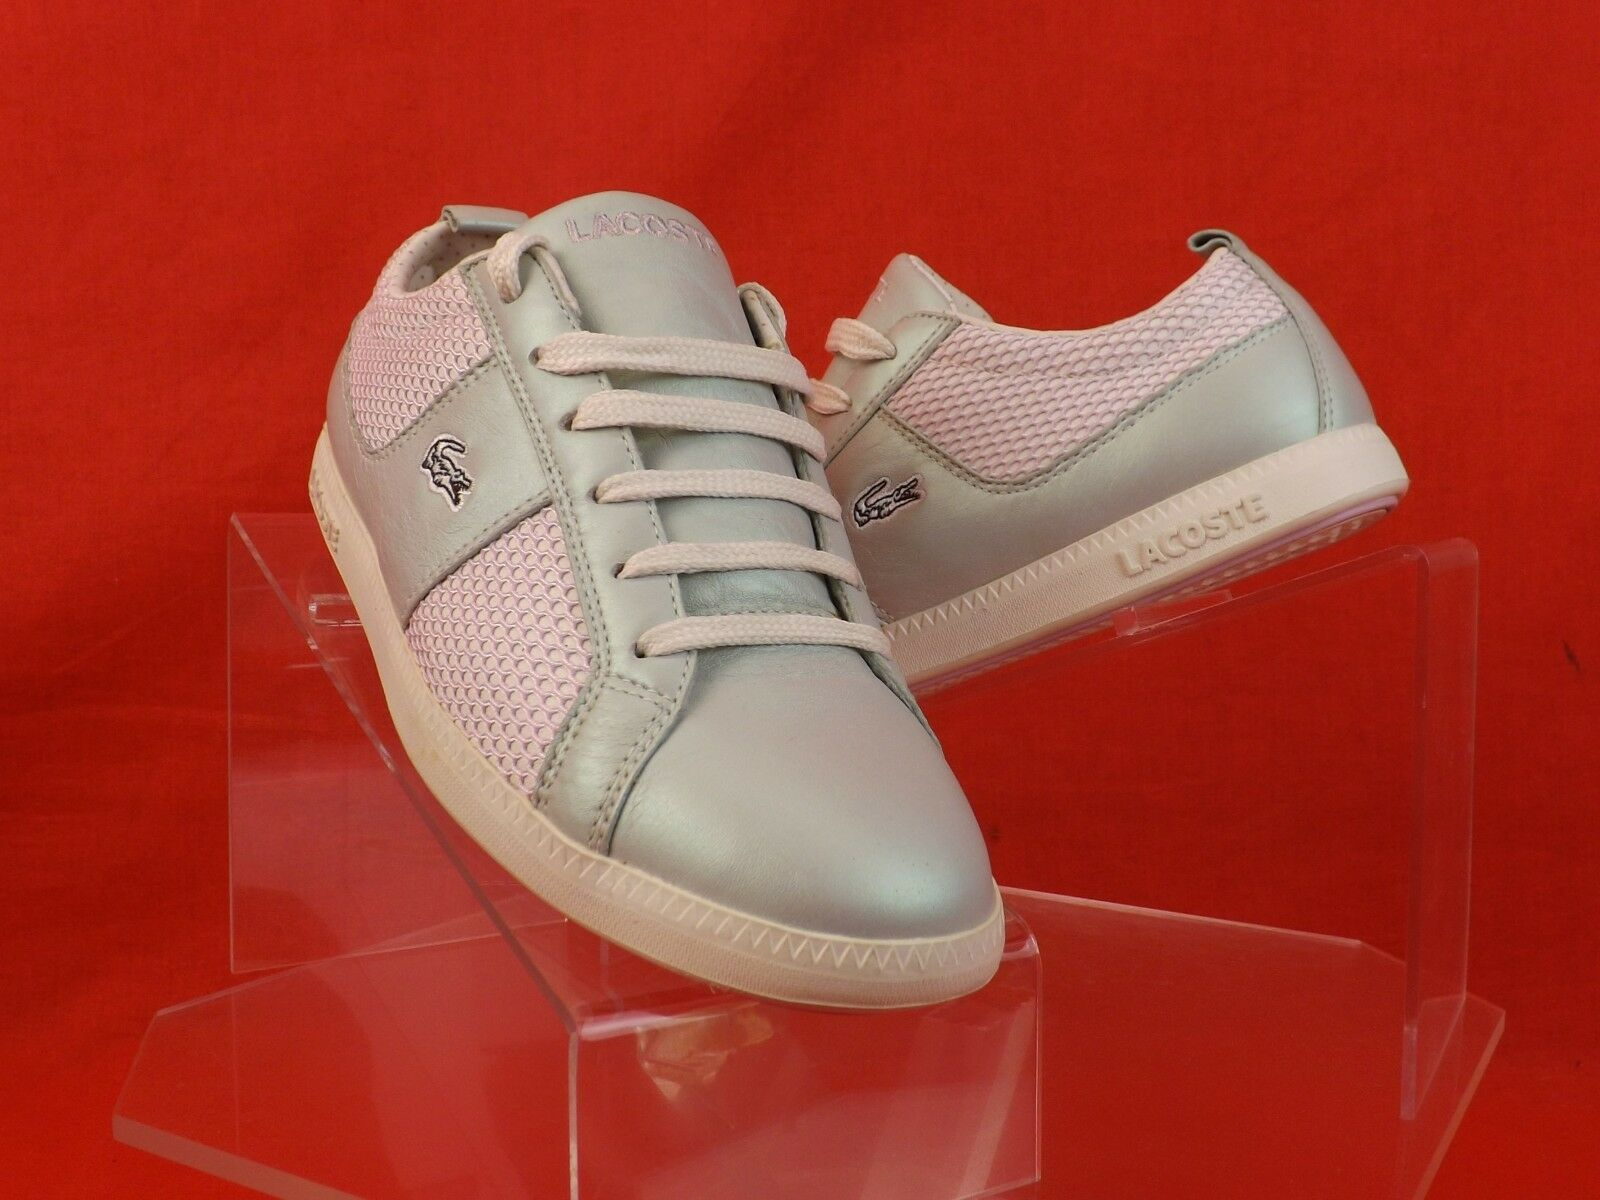 NWB LACOSTE PEARL PINK MIX OBSERVE LACE UP SNEAKERS 6